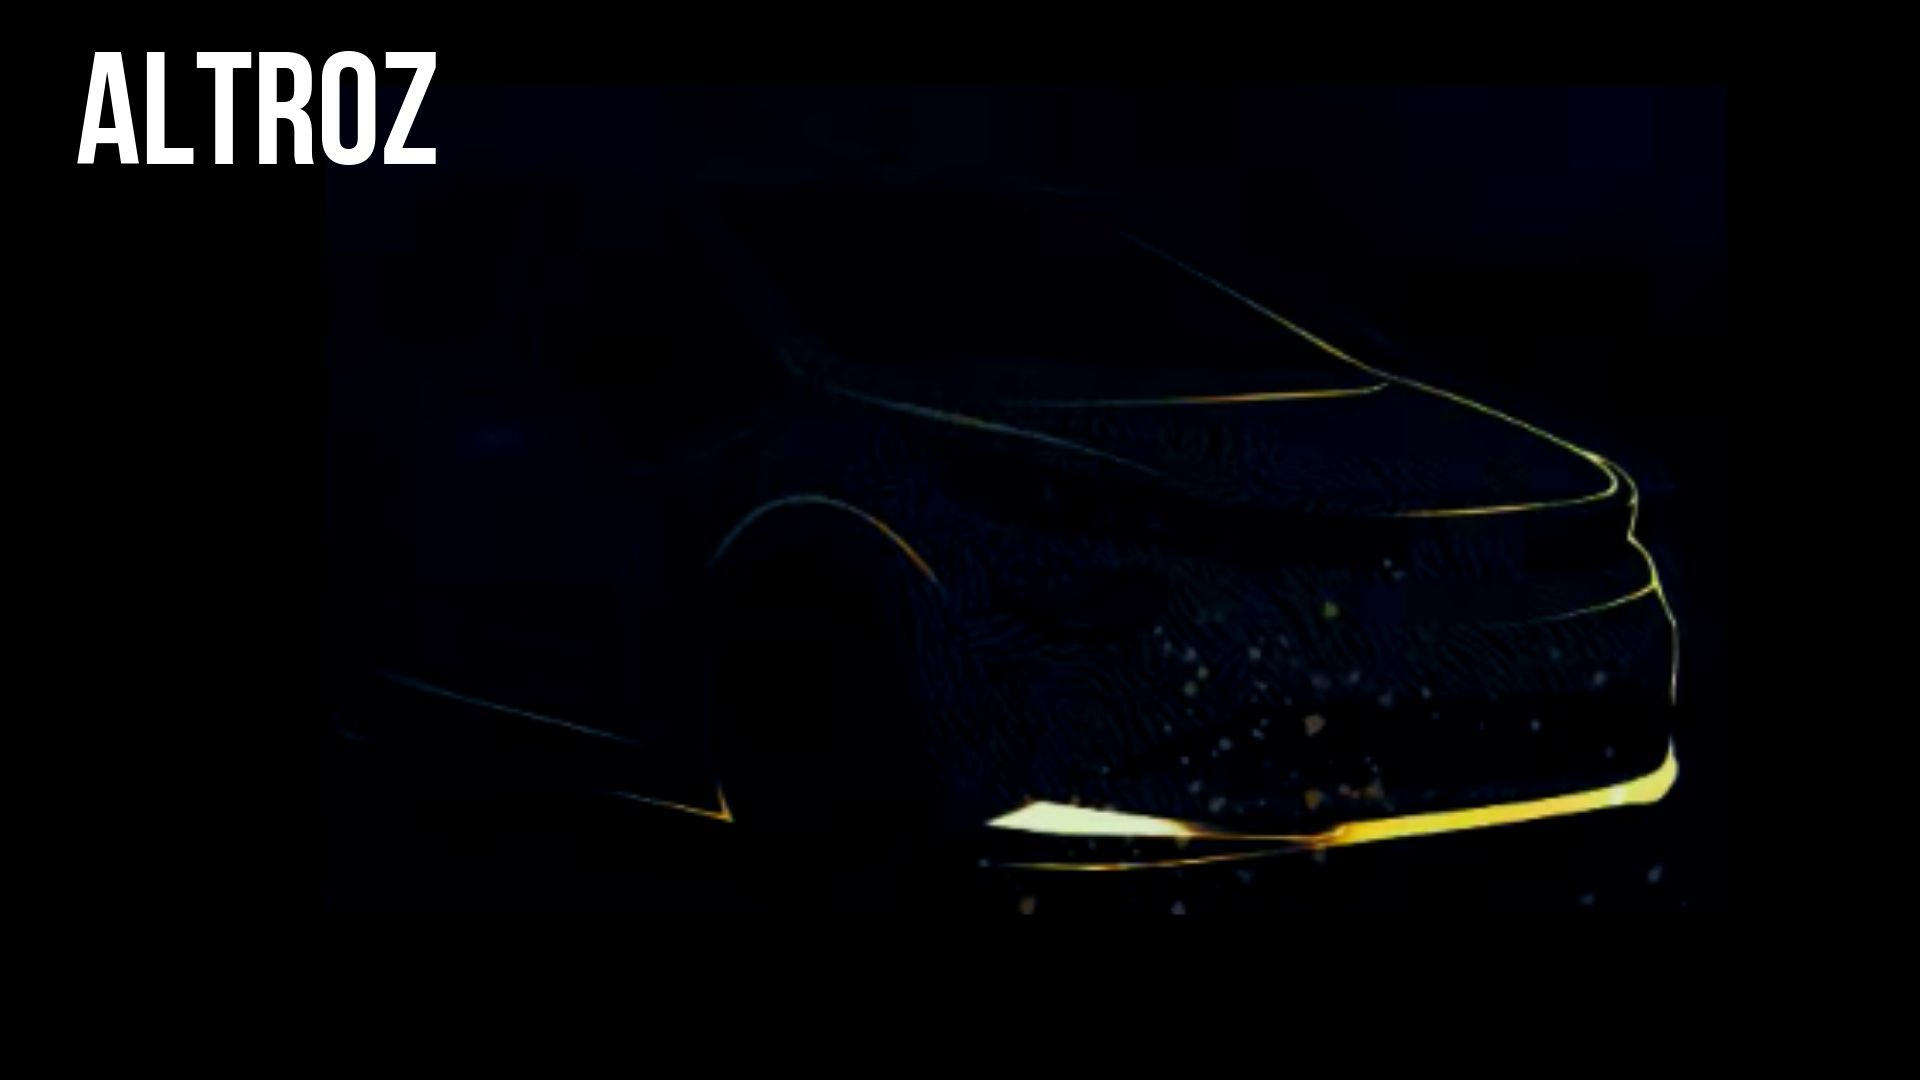 Tata Altroz Official Teaser Video Released, Website Launched - GaadiWaadi.com